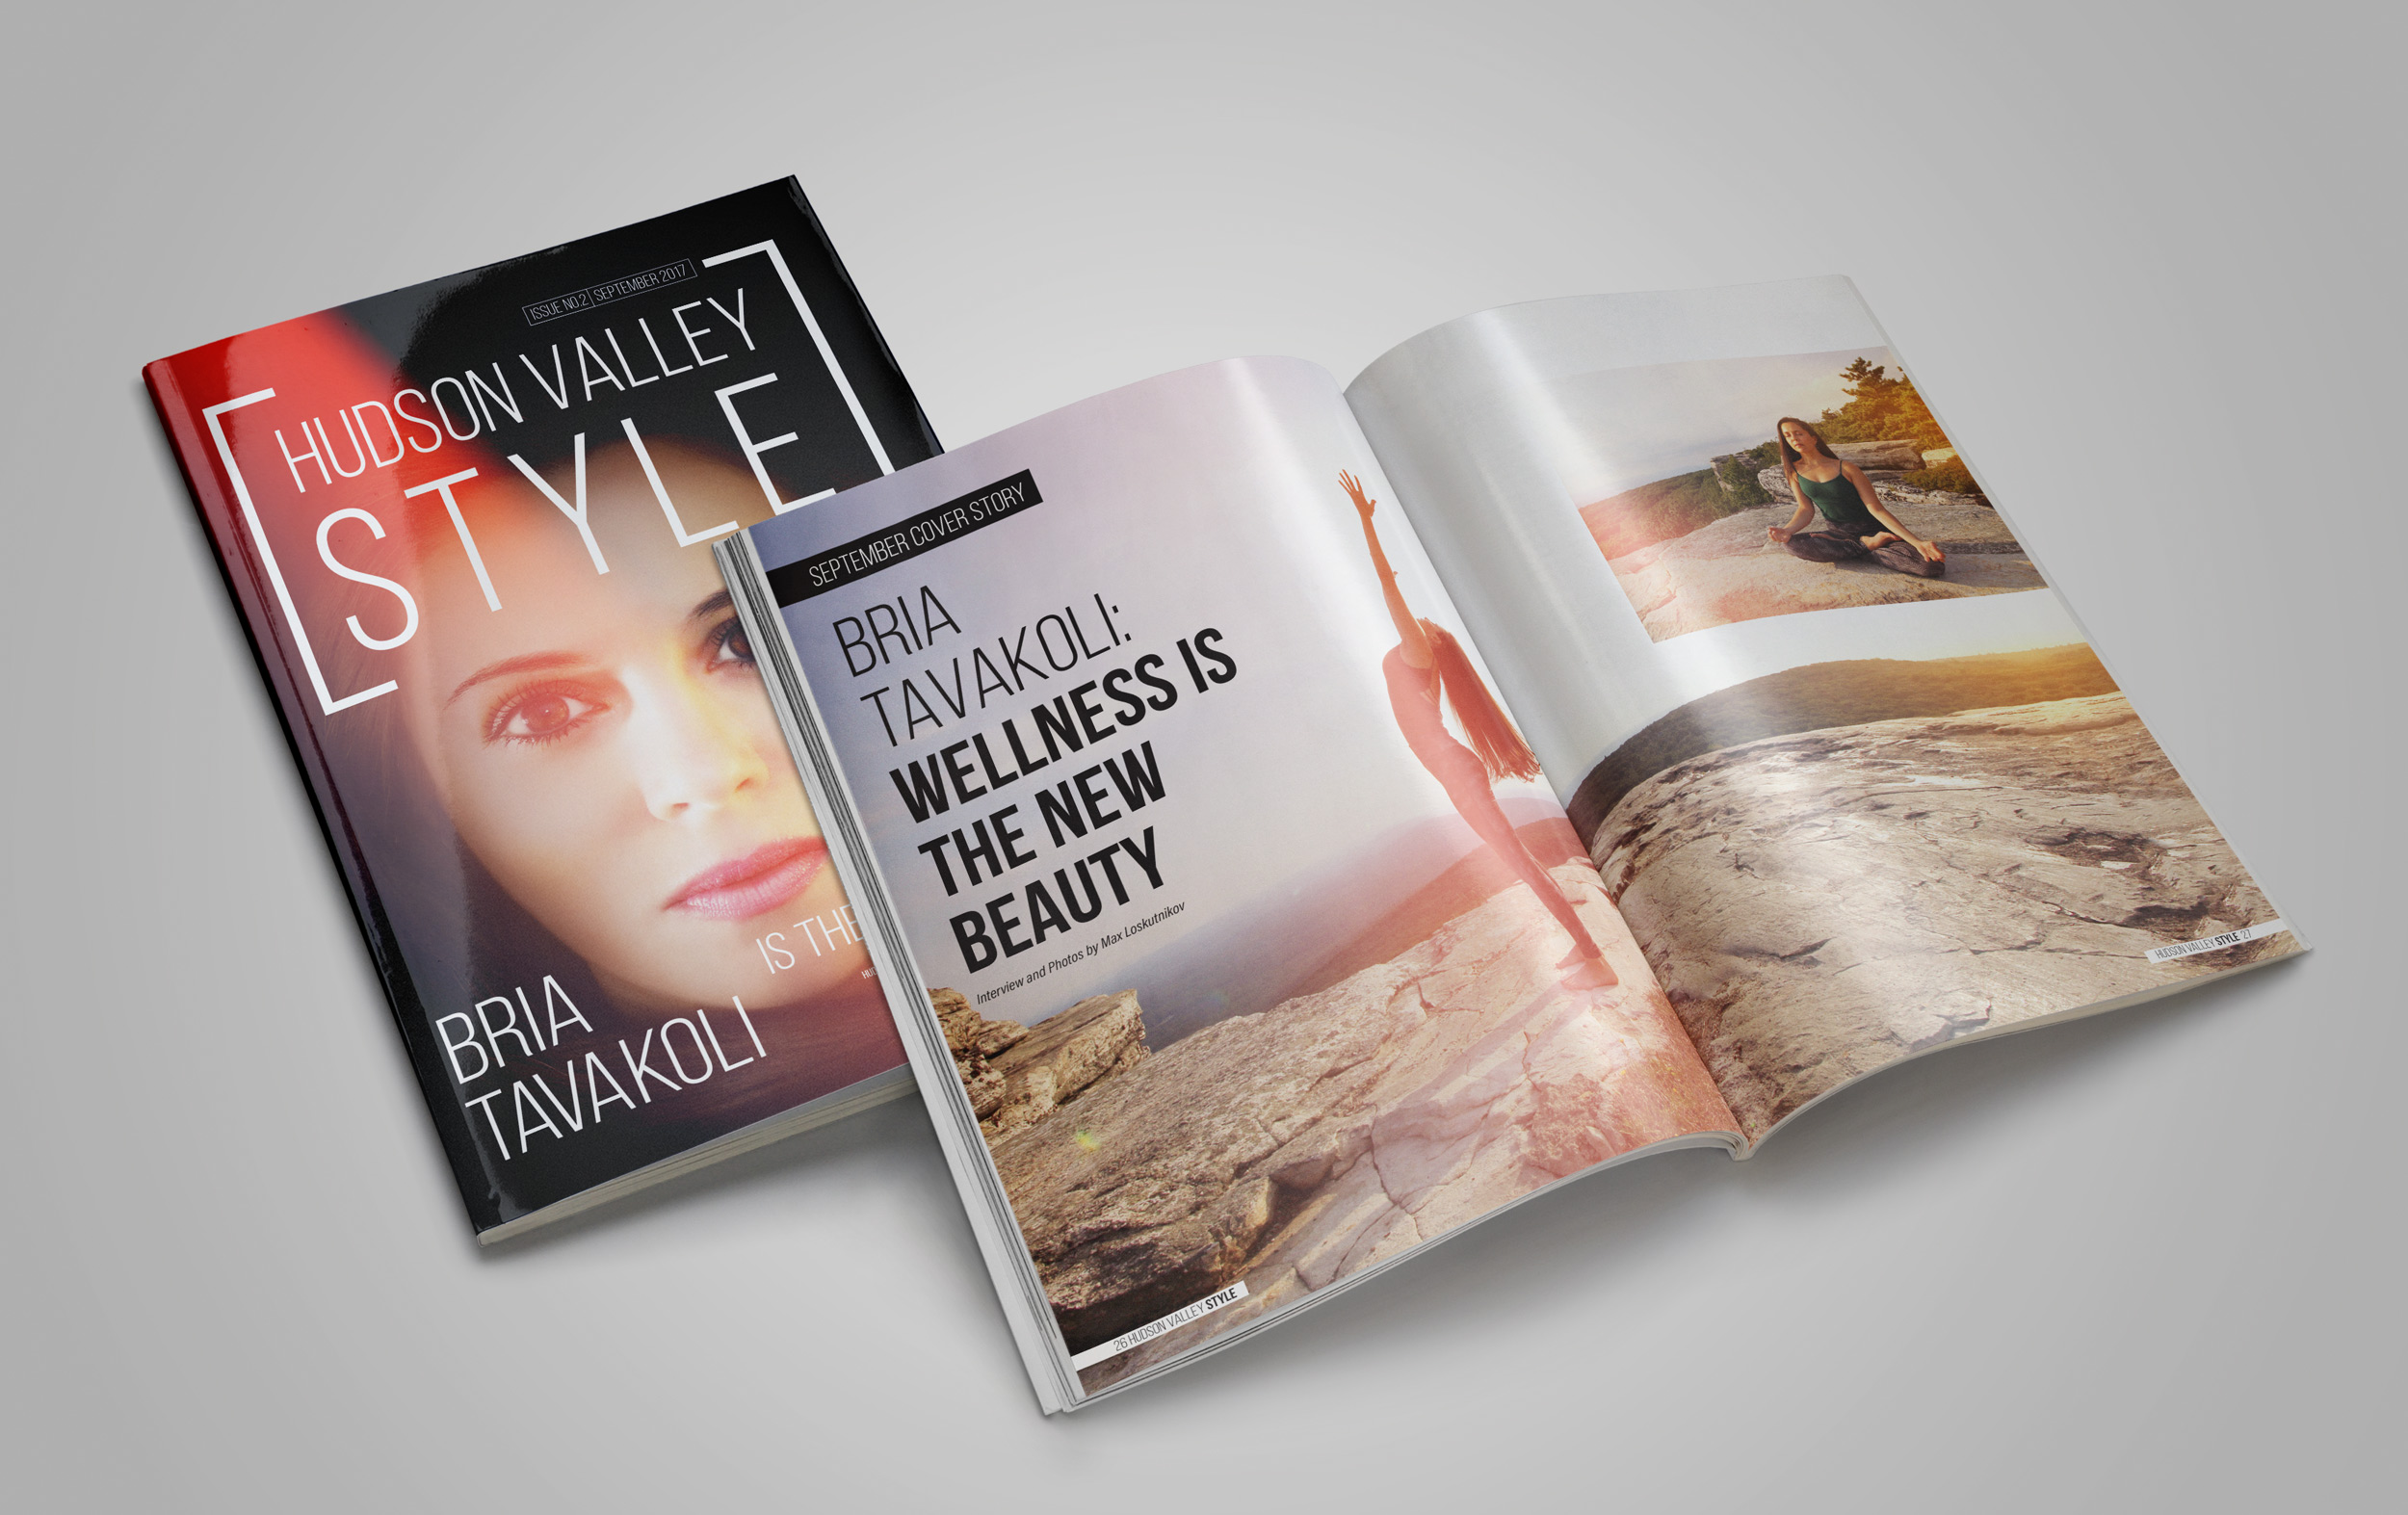 Hudson Valley Style Magazine September 2017 - Wellness and Beauty Issue